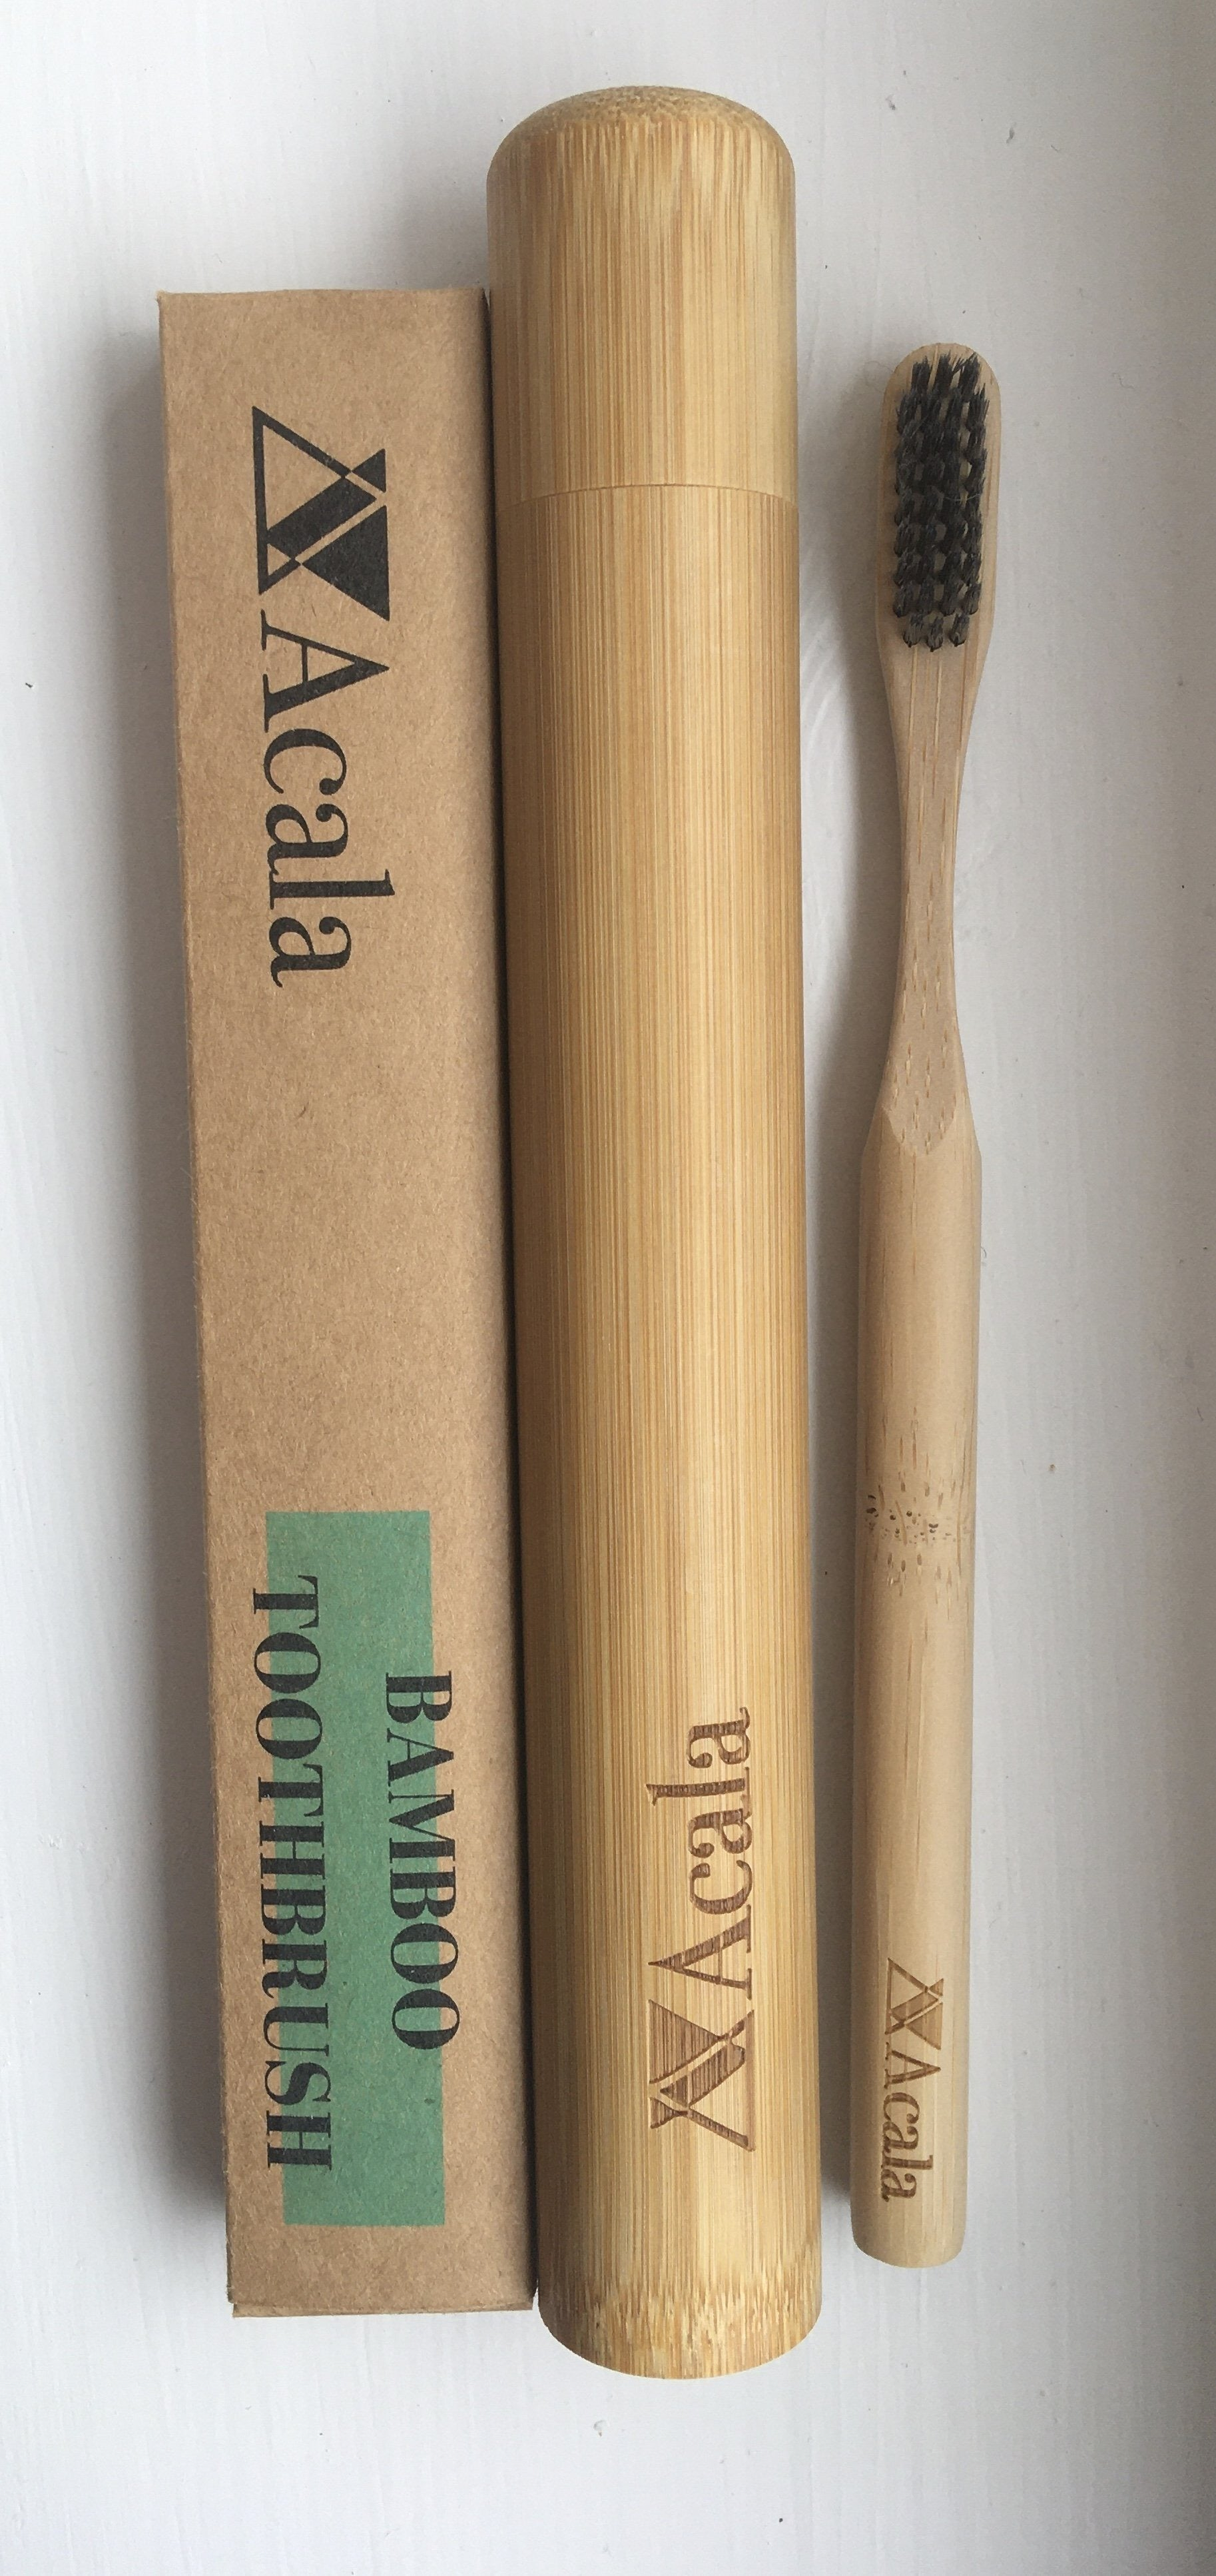 Bamboo Toothbrush with Charcoal Bristles from Acala